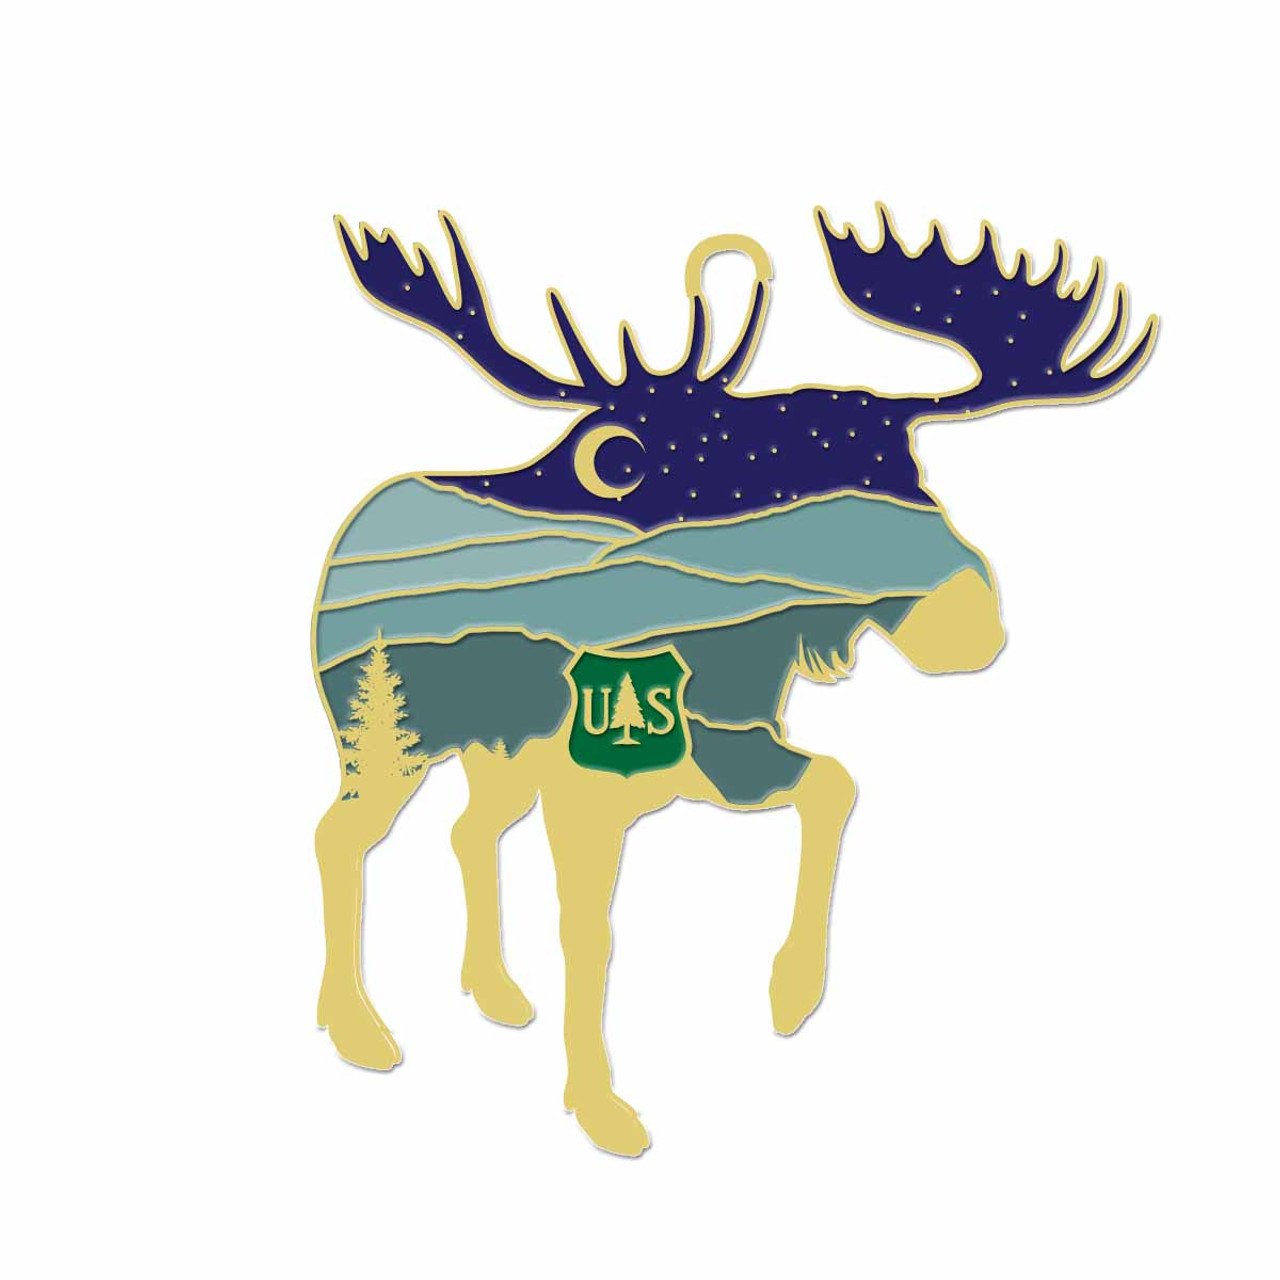 Forest Service Holiday Ornament 2020